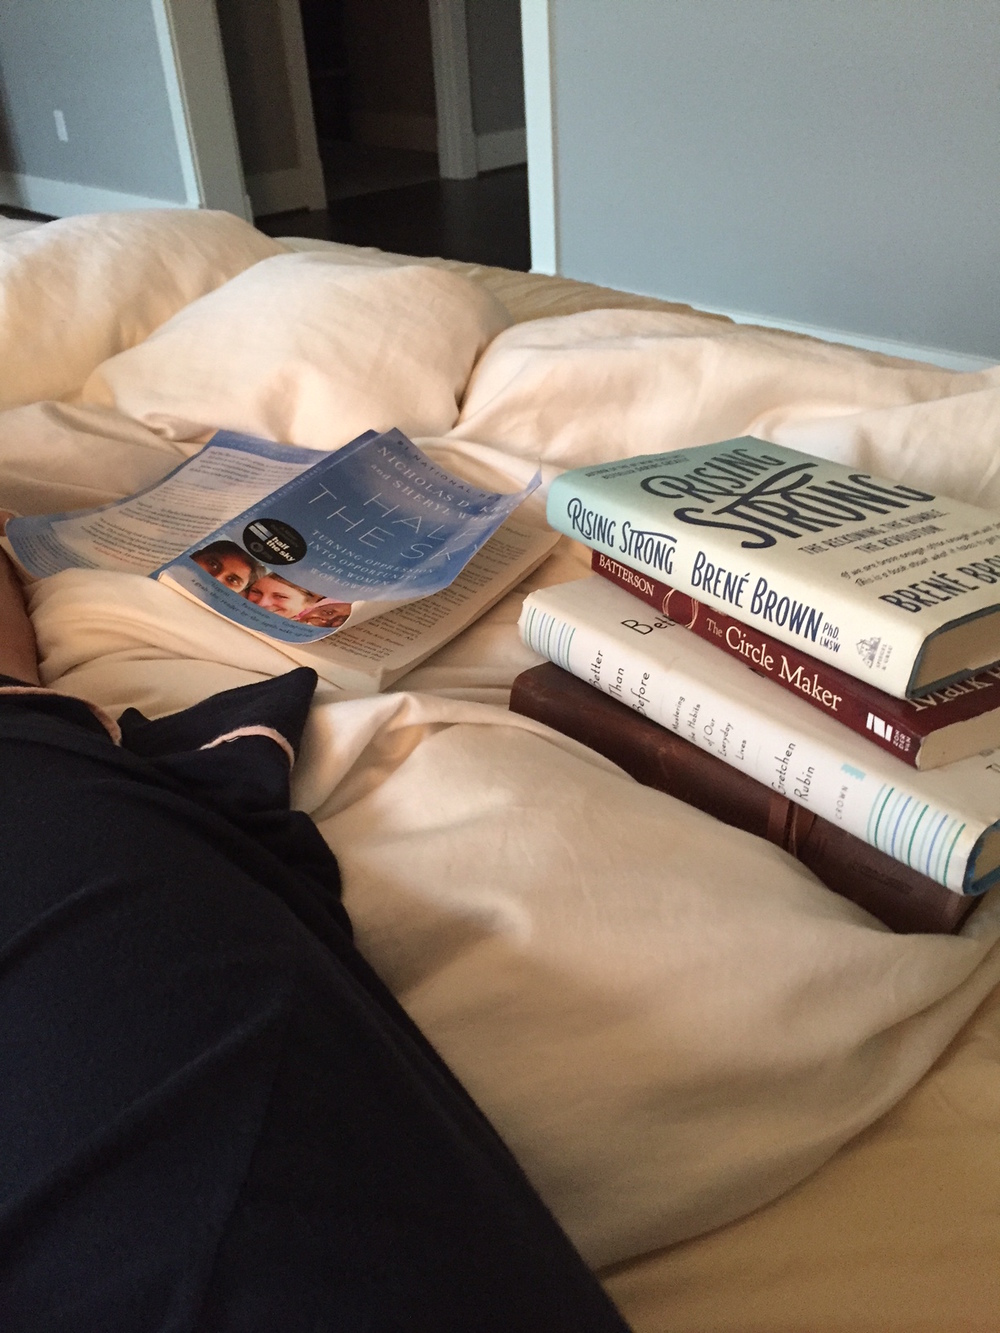 My bed.  My books.  My pajama-clad leg.  MY IDEA OF HEAVEN.